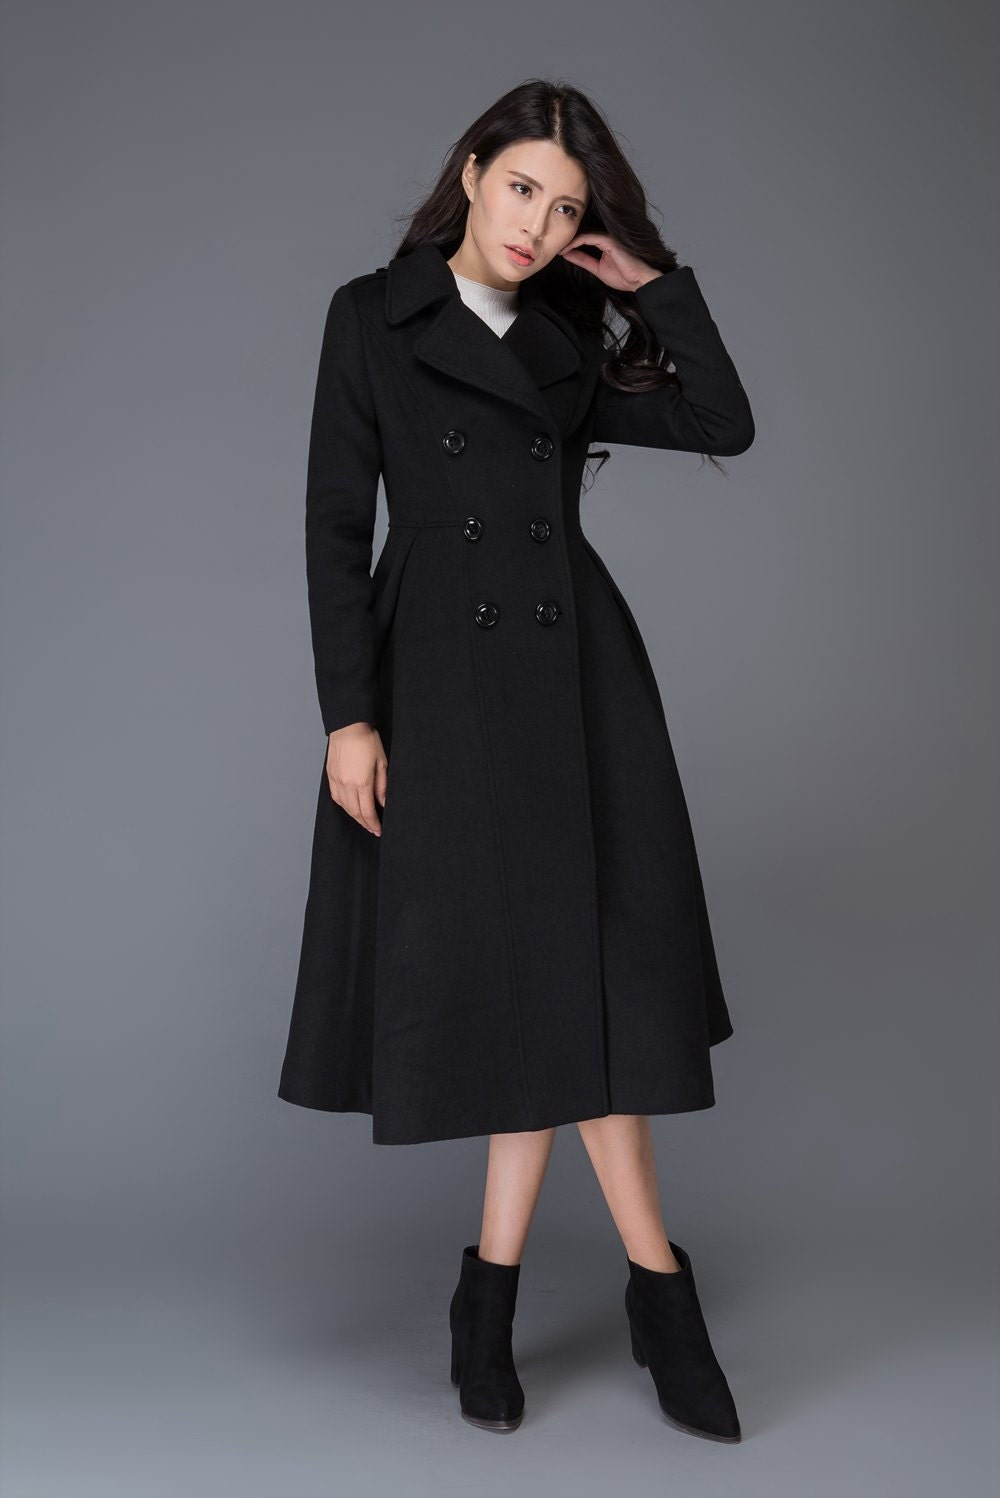 Sep 05,  · Buy the Roaman's Women's Plus Size Long Wool Coat here. Best Play Coat: Woman Within Women's Plus Size Weather-Resistant Taslon Anorak – $ – $